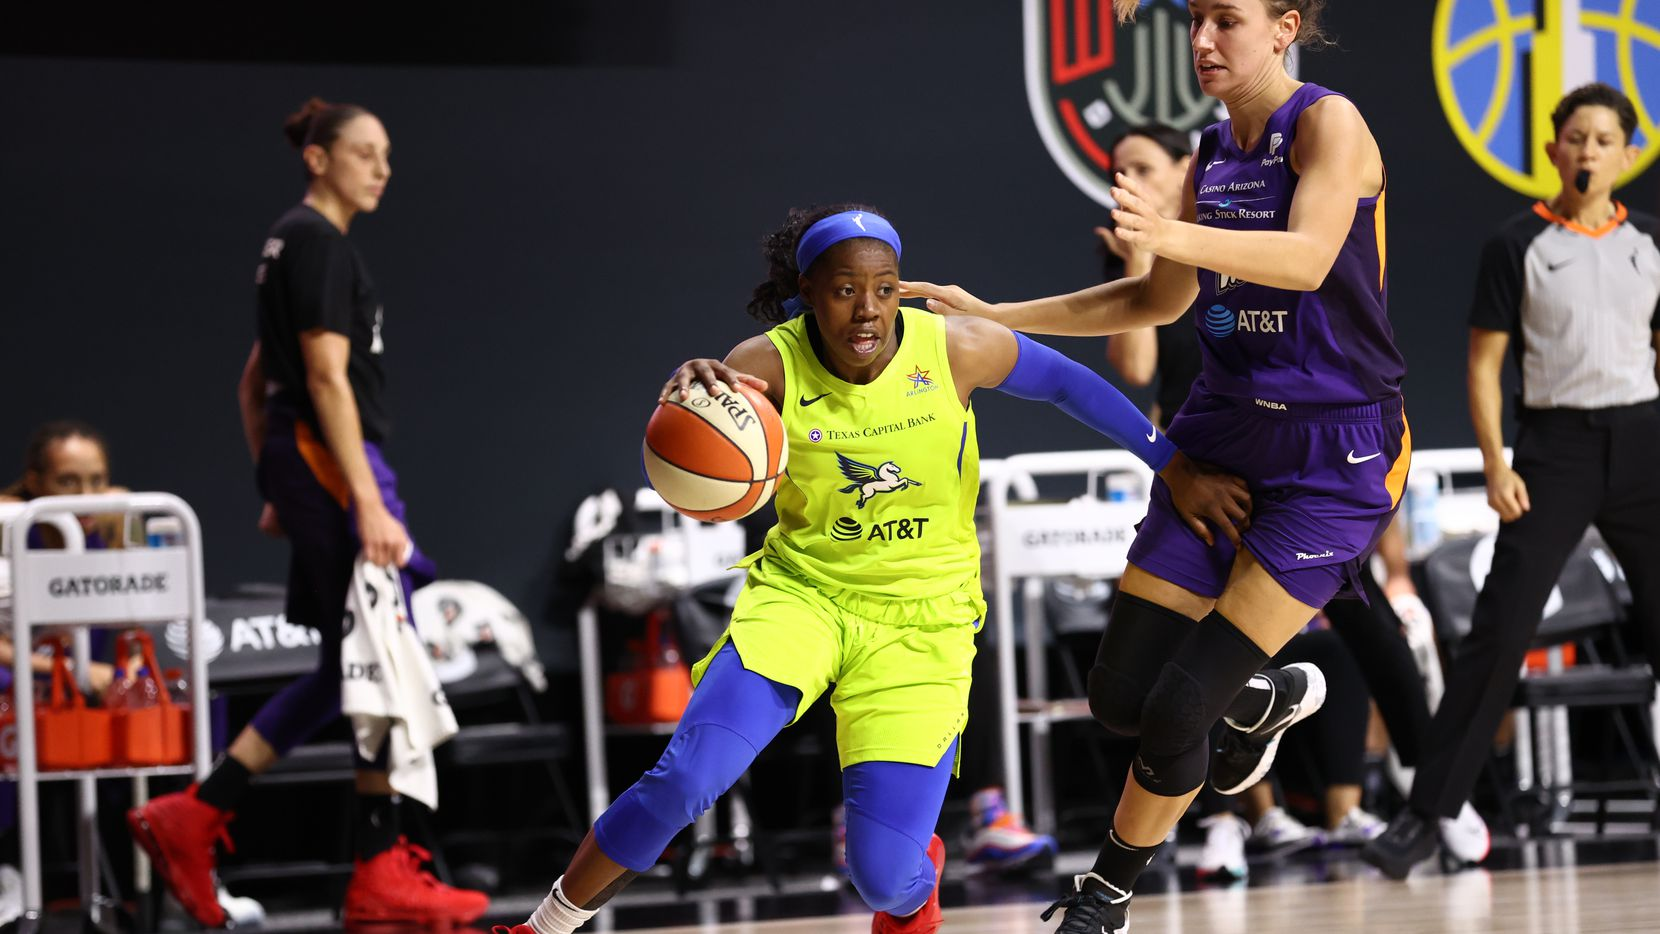 PALMETTO, FL - AUGUST 16: Arike Ogunbowale #24 of the Dallas Wings handles the ball against the Phoenix Mercury on August 16, 2020 at Feld Entertainment Center in Palmetto, Florida.